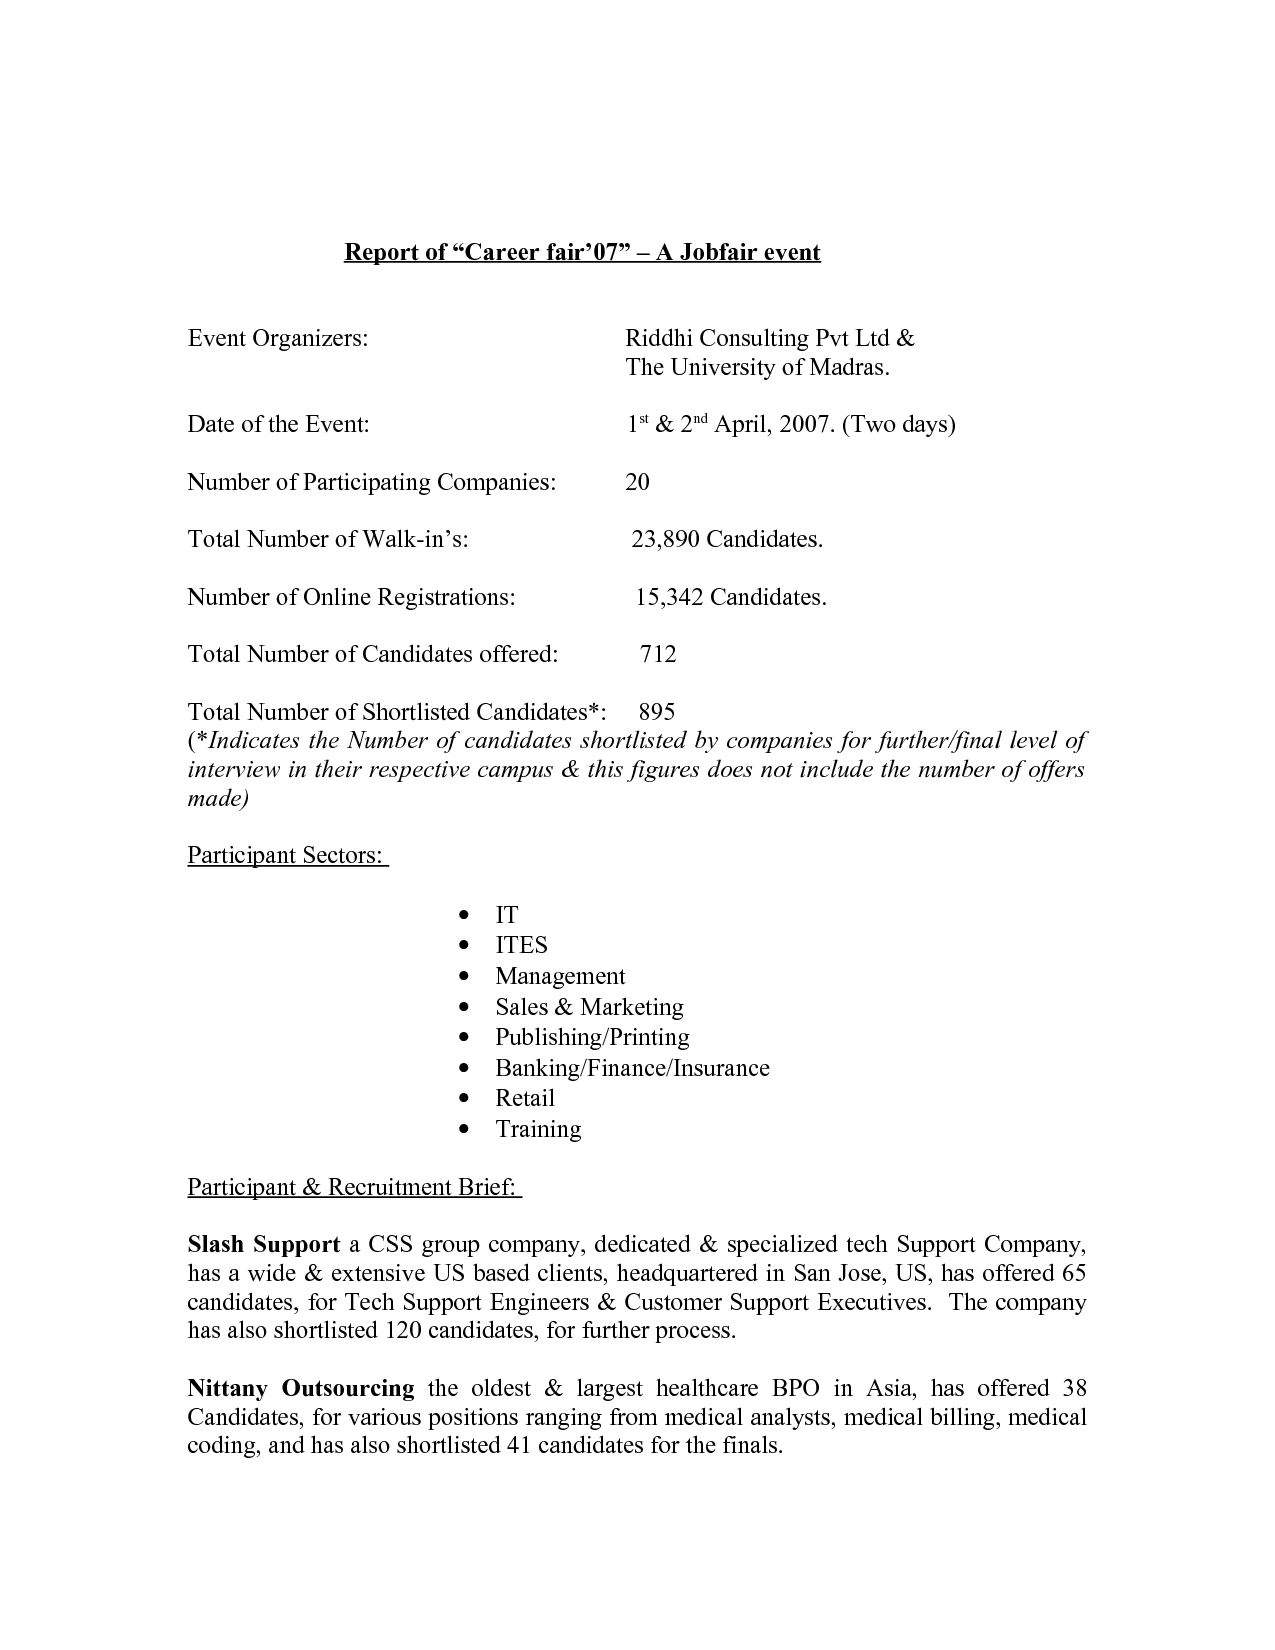 Resume Format For Freshers Free Download Resume Format For Freshers Free  Download, Resume Format For  How To Make A Modeling Resume